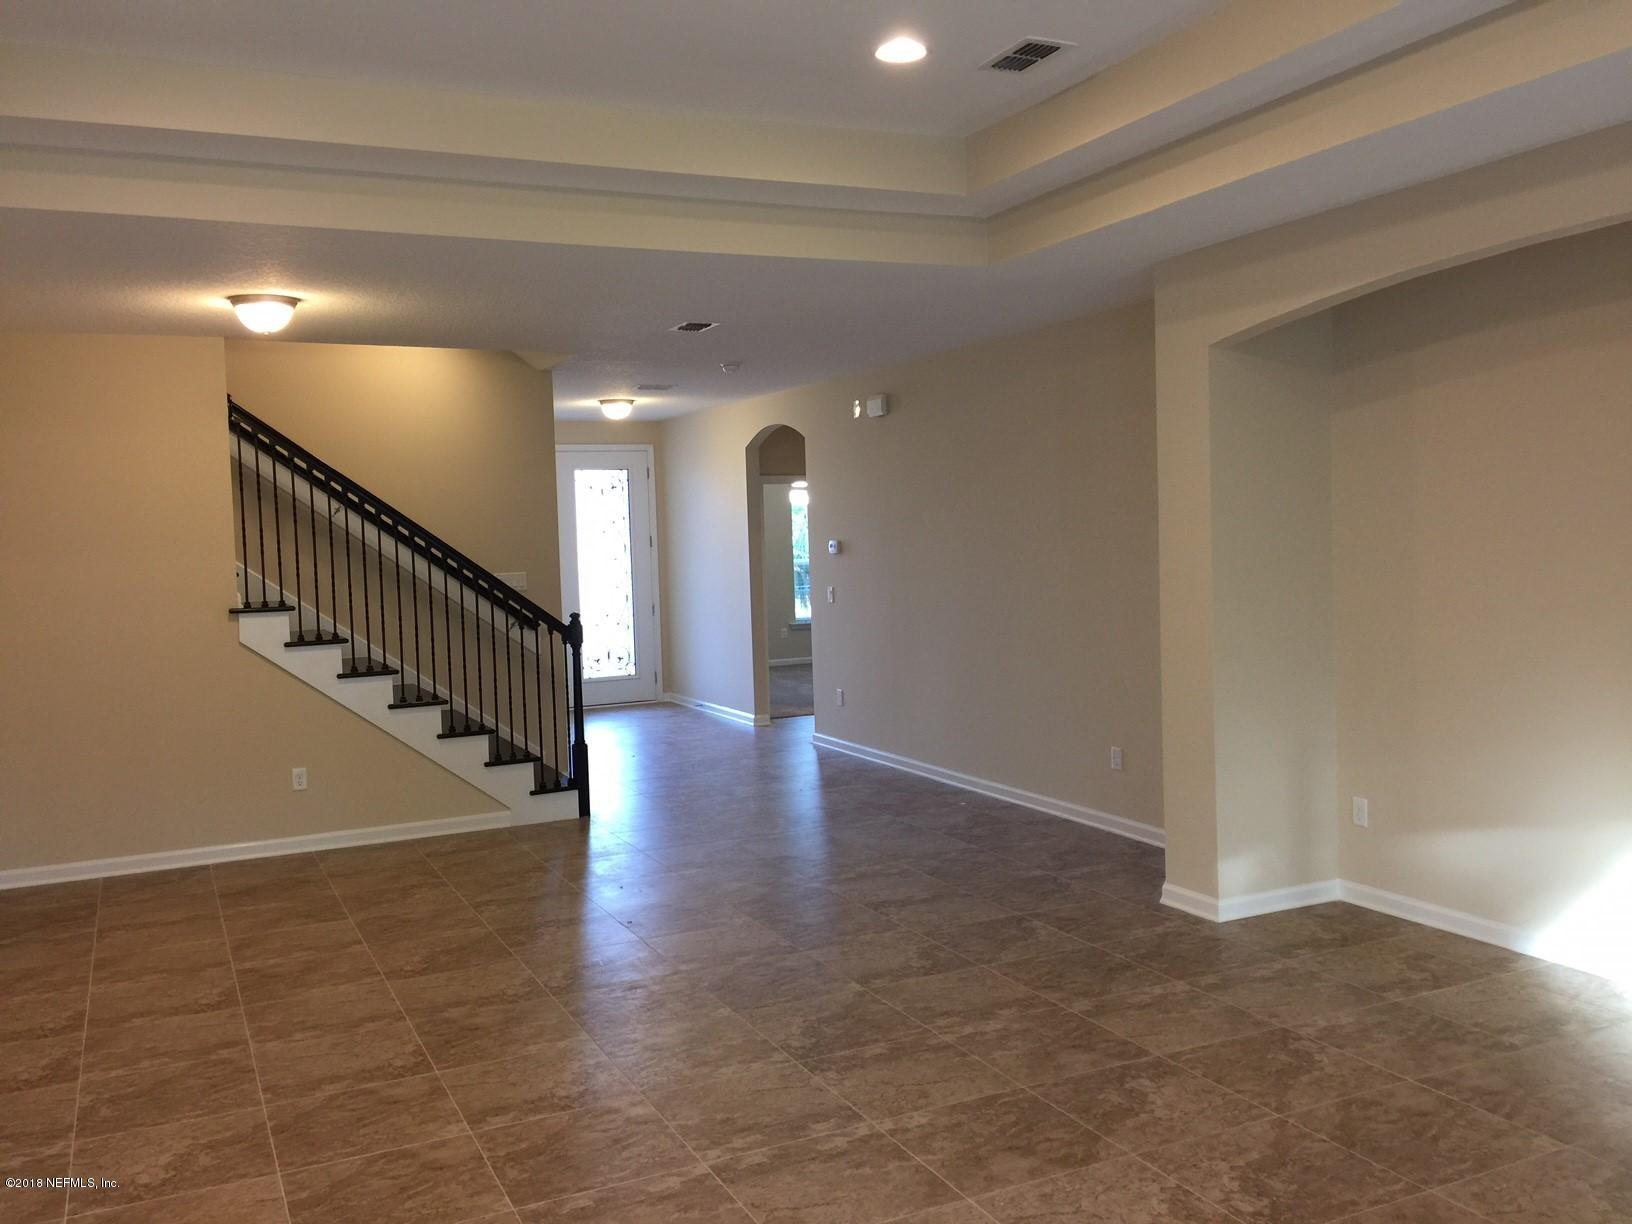 40 CYPRESS BANKS, ST JOHNS, FLORIDA 32259, 5 Bedrooms Bedrooms, ,4 BathroomsBathrooms,Residential - single family,For sale,CYPRESS BANKS,953900